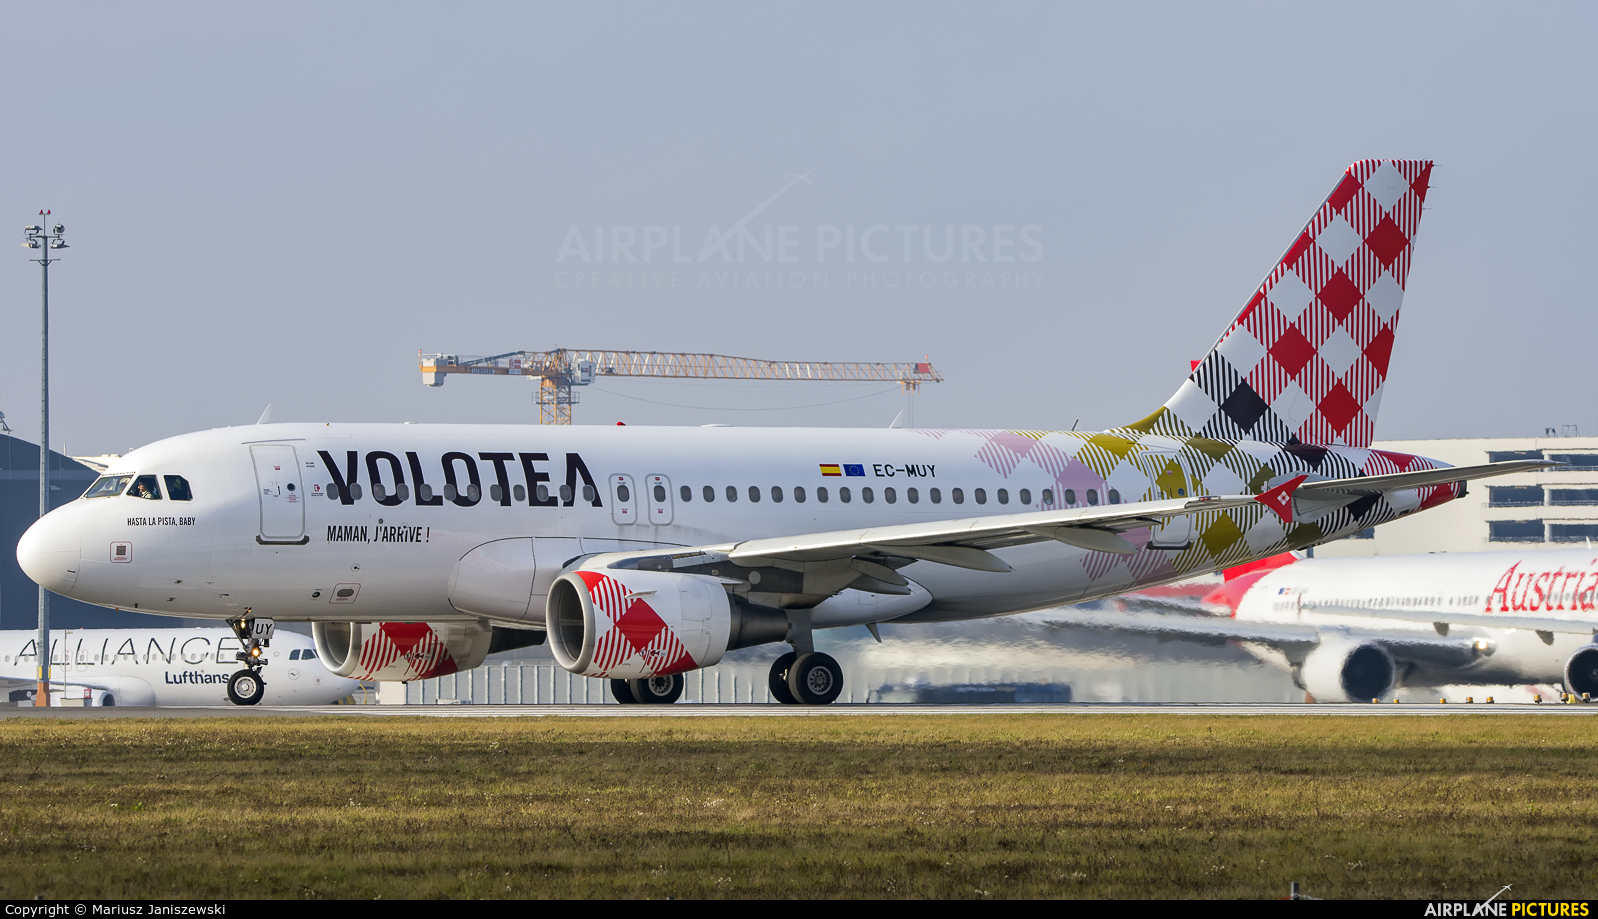 Volotea Airlines EC-MUY aircraft at Vienna - Schwechat